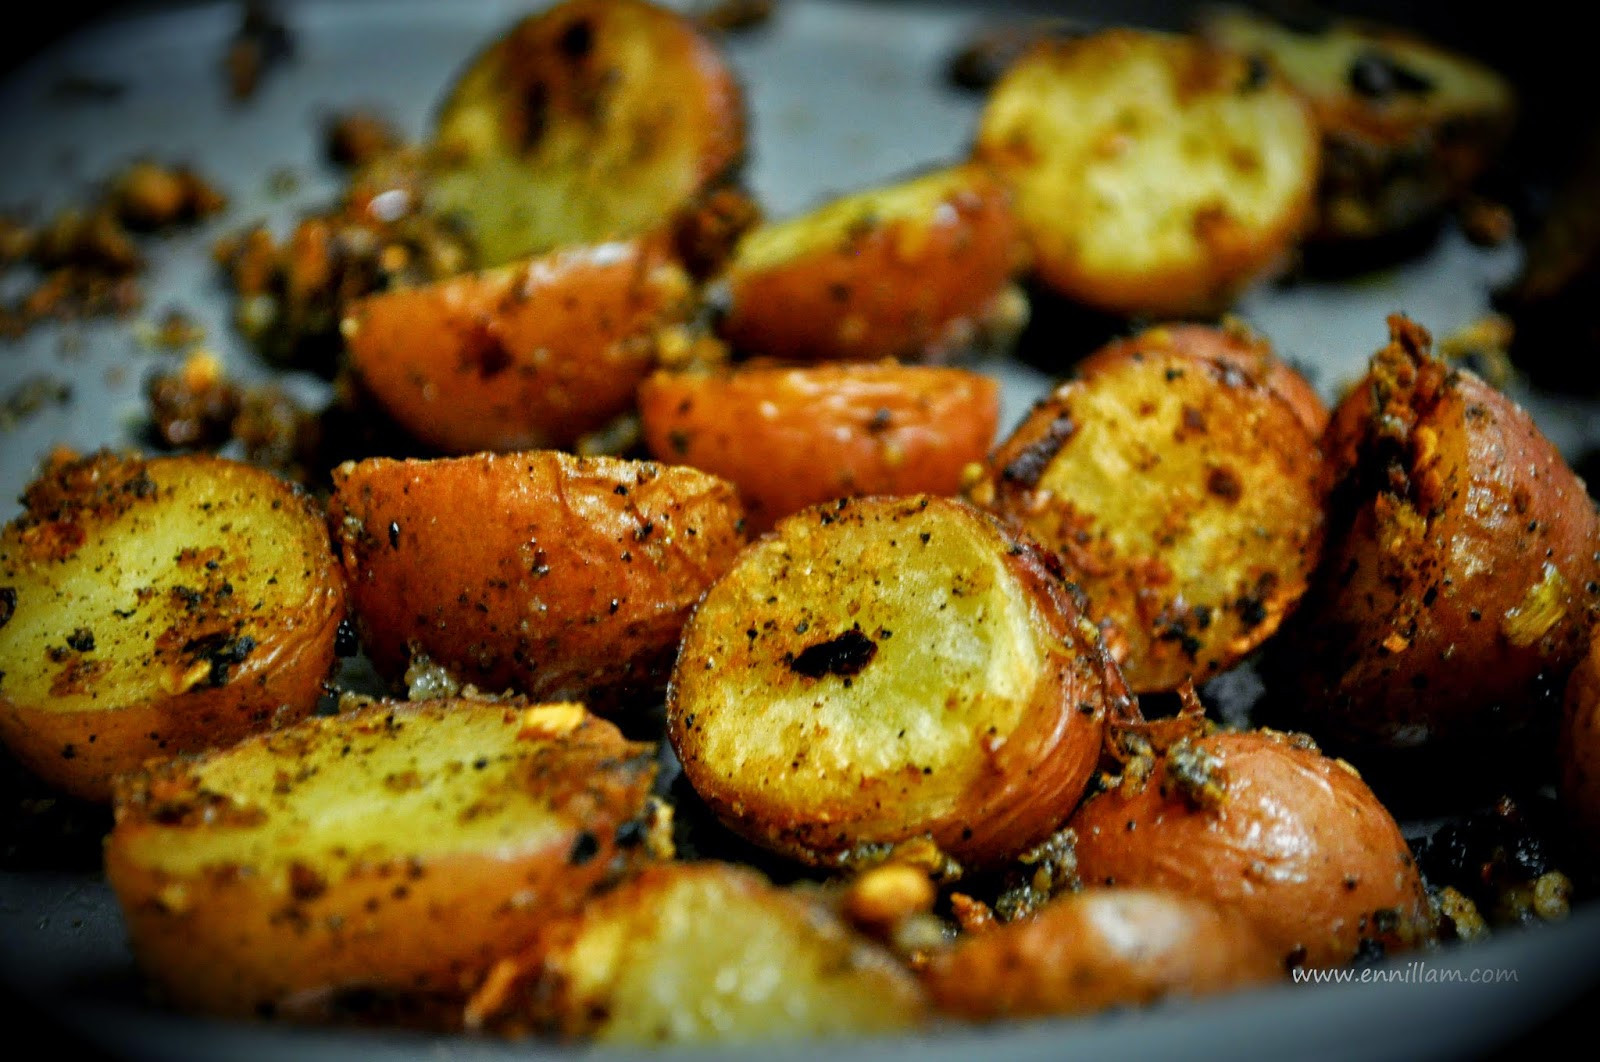 Roasted Baby Red Potatoes  Oven roasted red baby potatoes